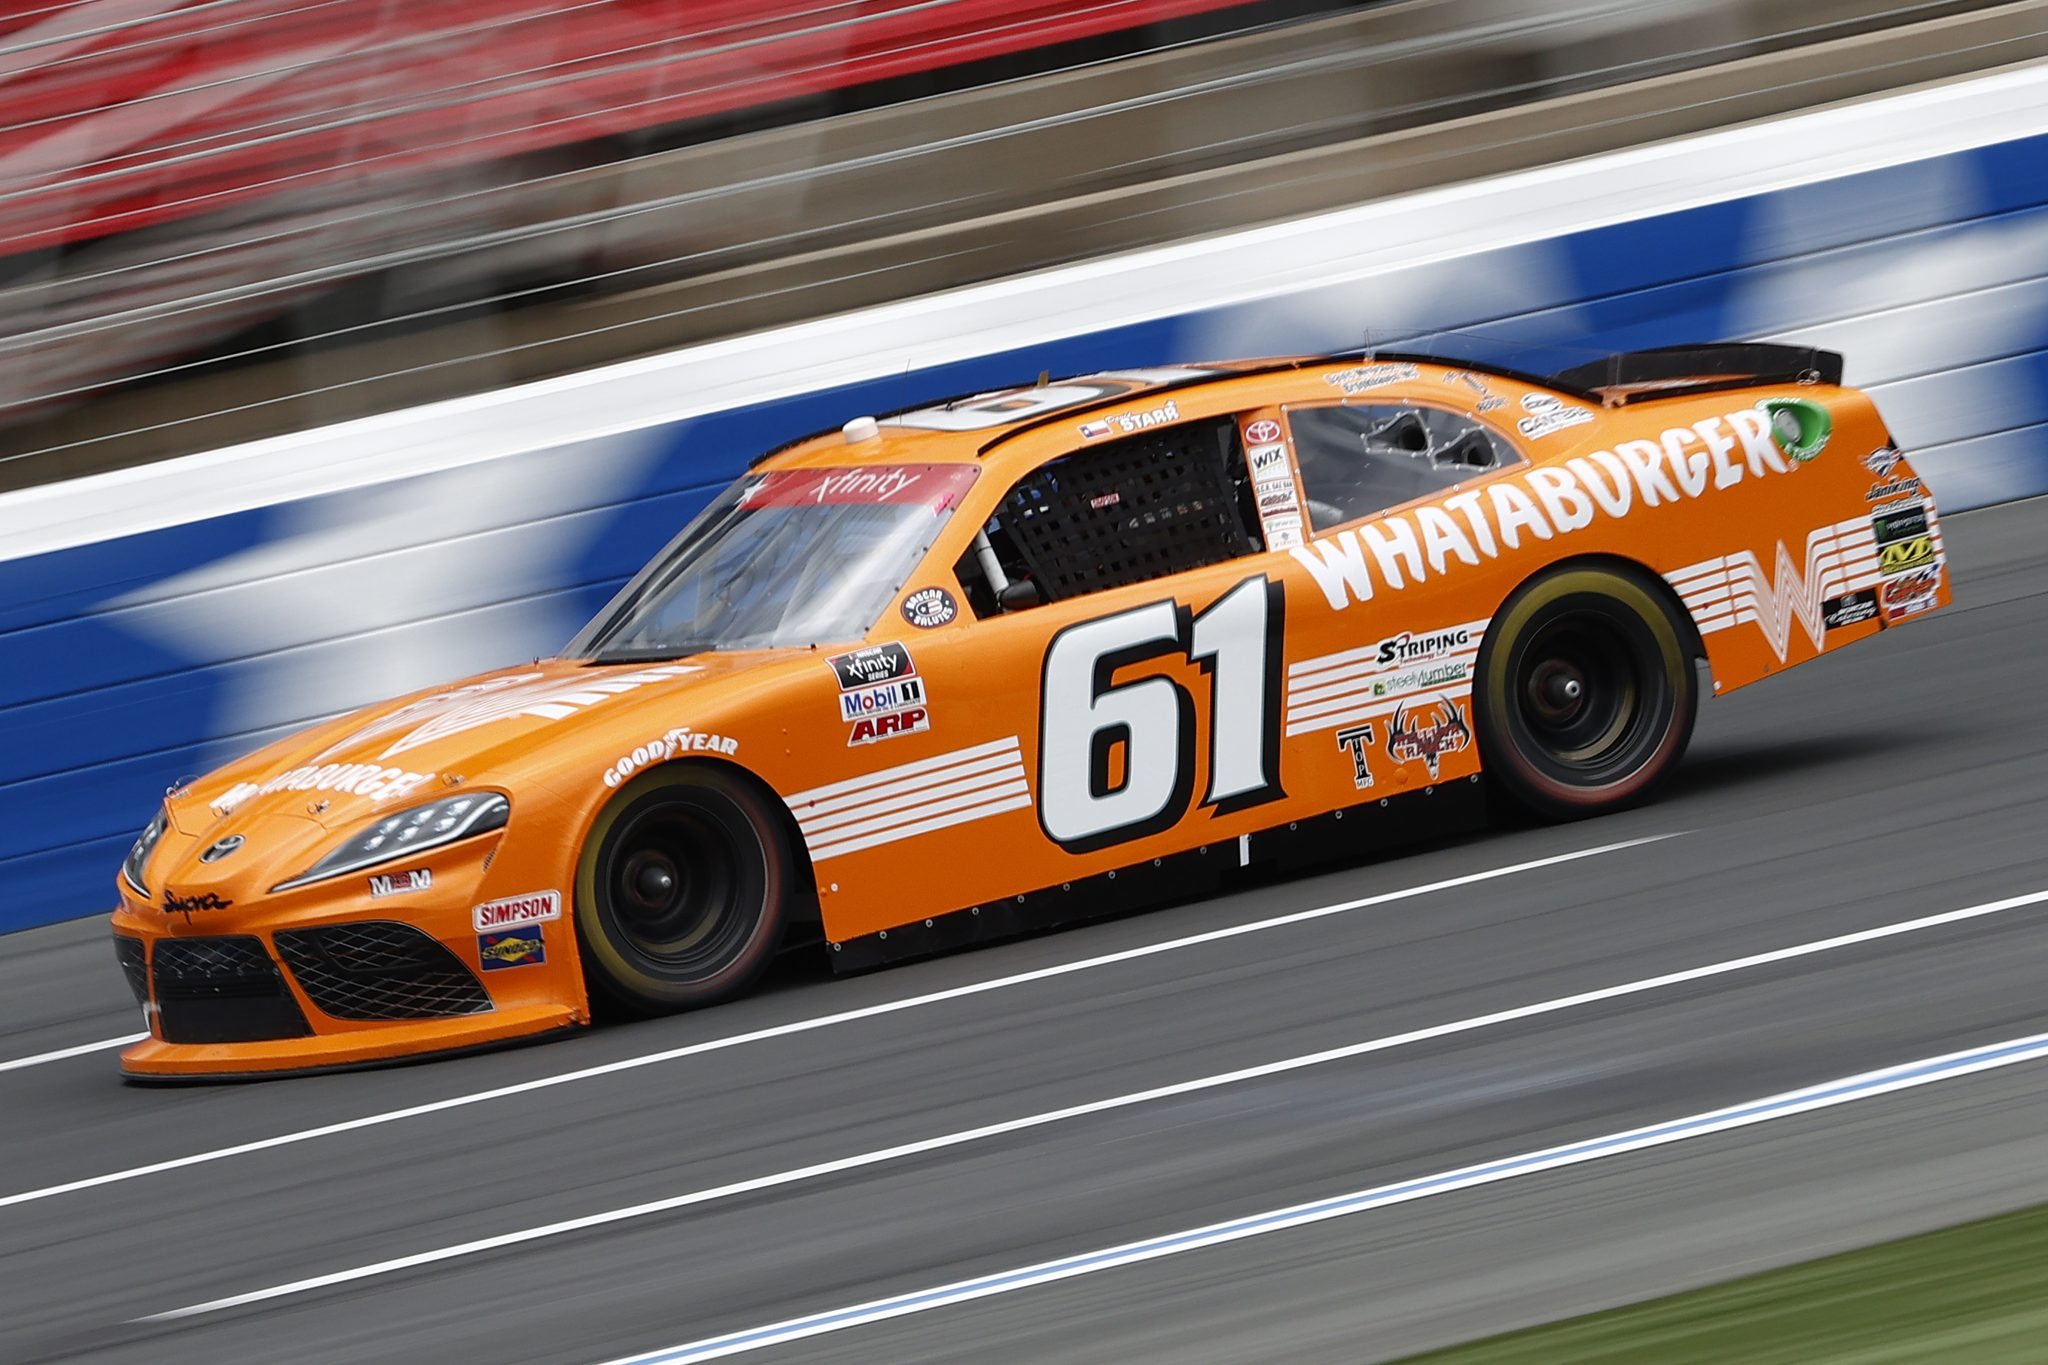 CONCORD, NORTH CAROLINA - MAY 28: David Starr, driver of the #61 Whataburger Toyota, drives during practice for the NASCAR Xfinity Series Alsco Uniforms 300 at Charlotte Motor Speedway on May 28, 2021 in Concord, North Carolina. (Photo by Maddie Meyer/Getty Images) | Getty Images